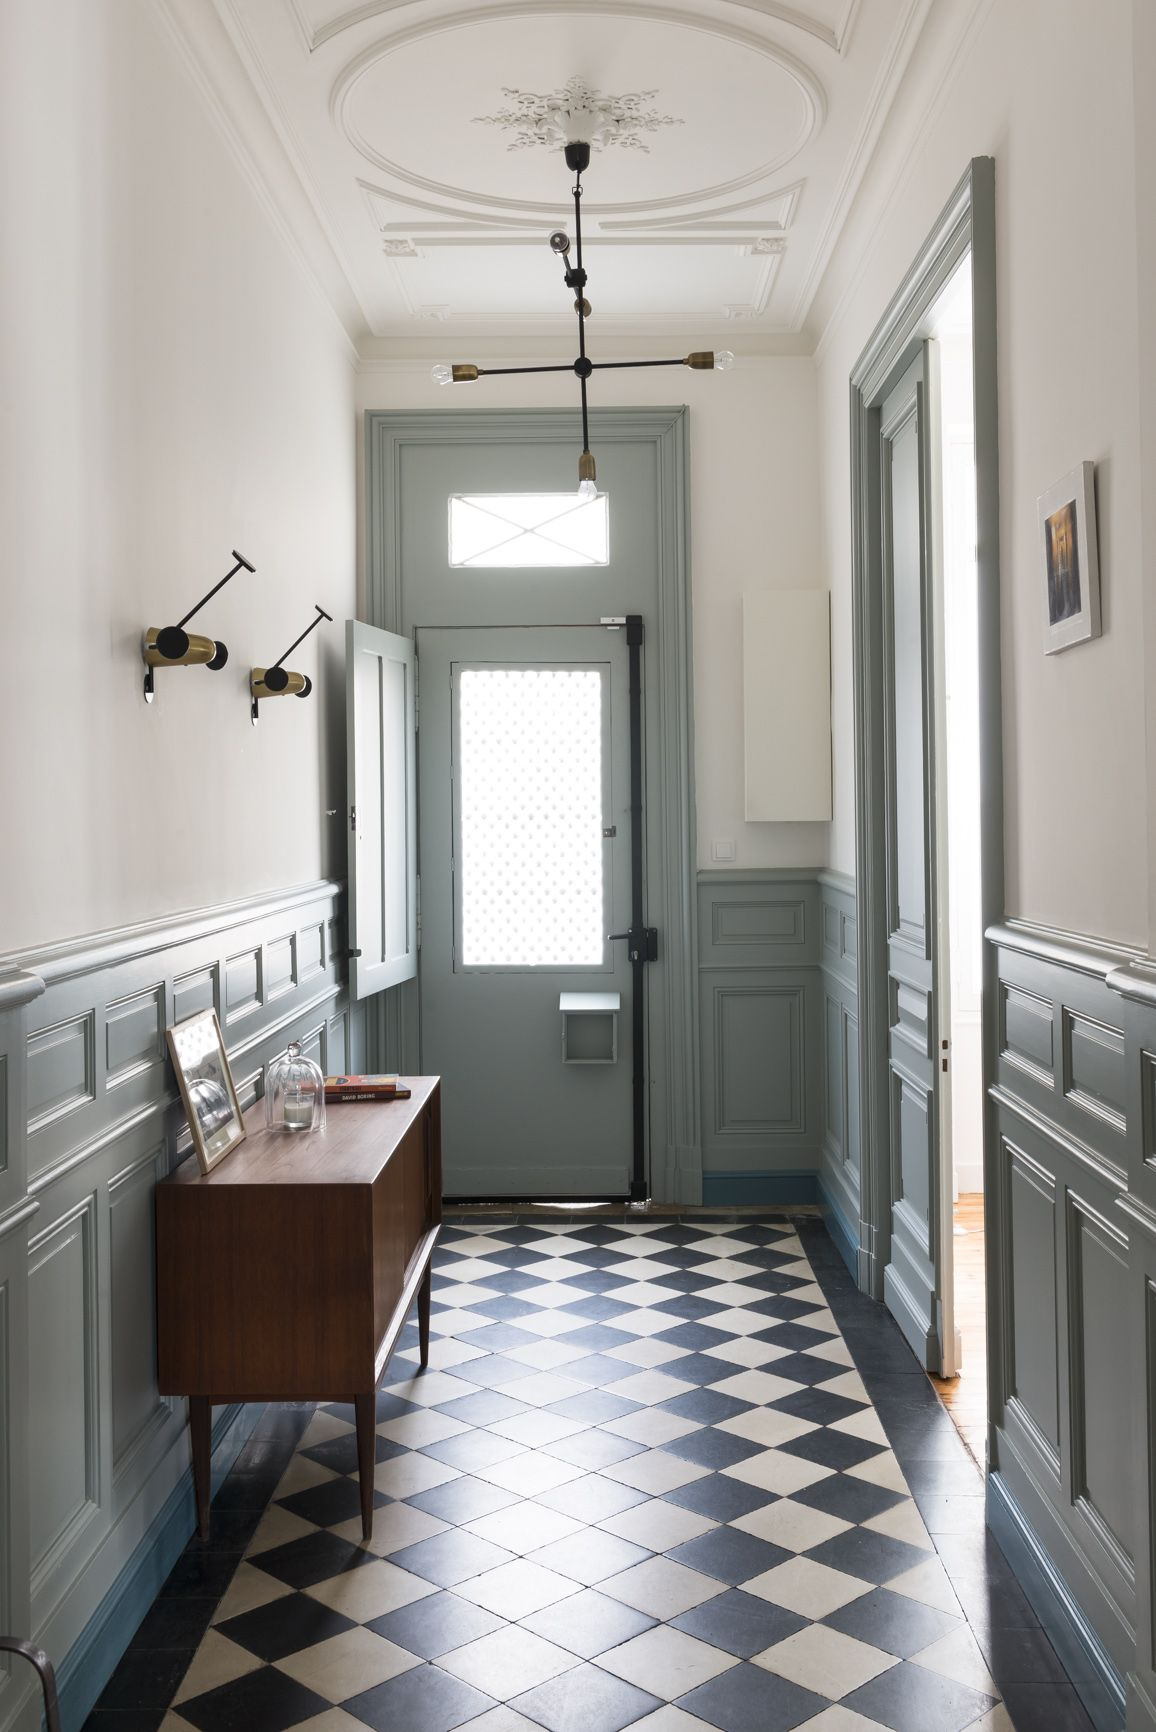 Best 25 maison bourgeoise ideas on pinterest boiseries for Renover fenetre bois